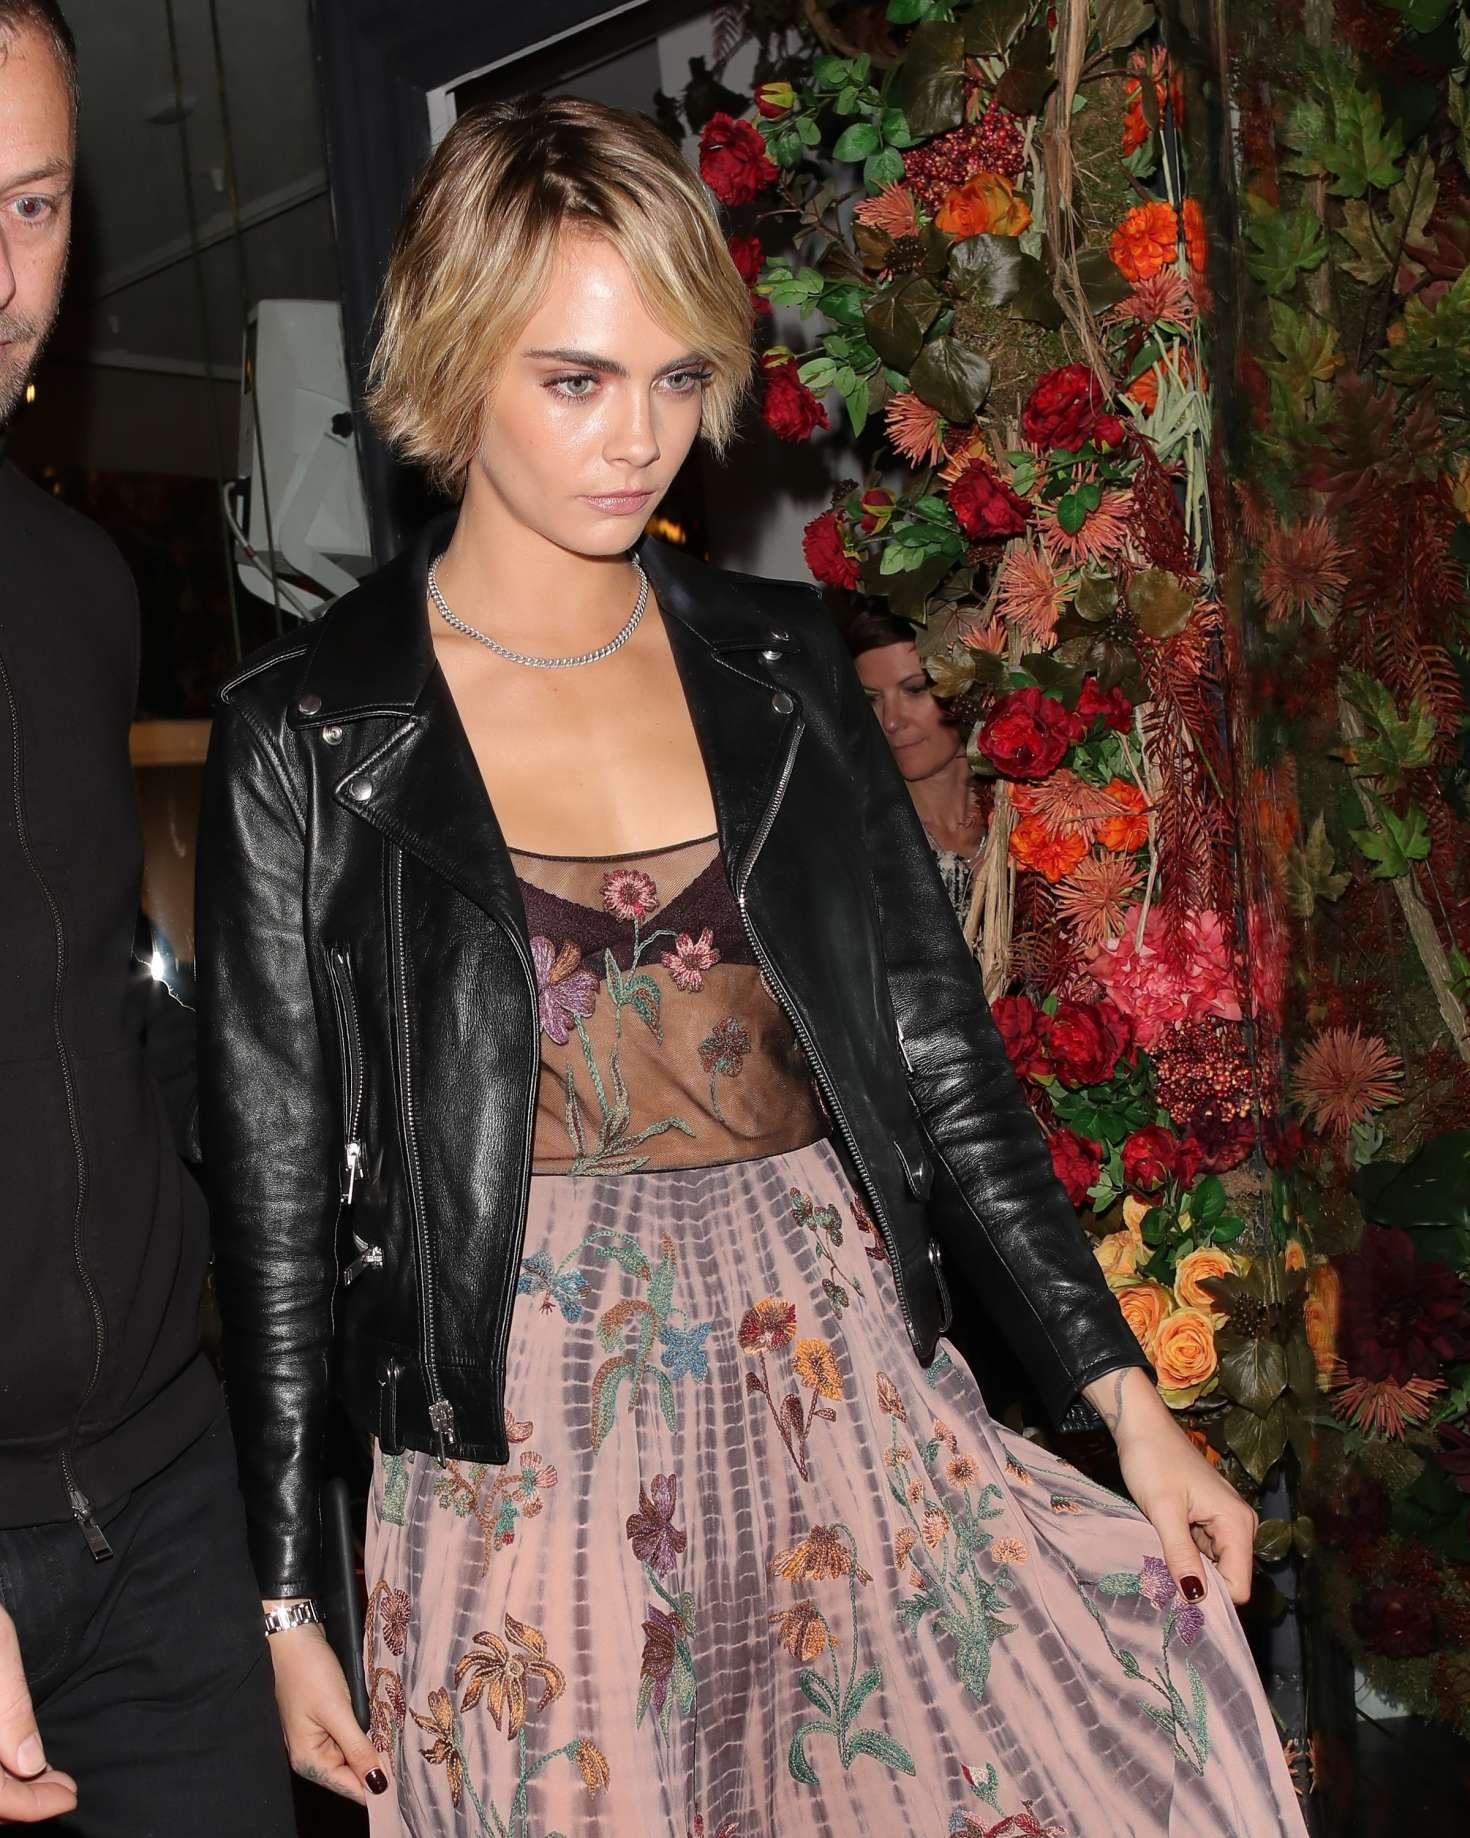 Cara Delevingne at Maddox Gallery Westbourne Grove in London